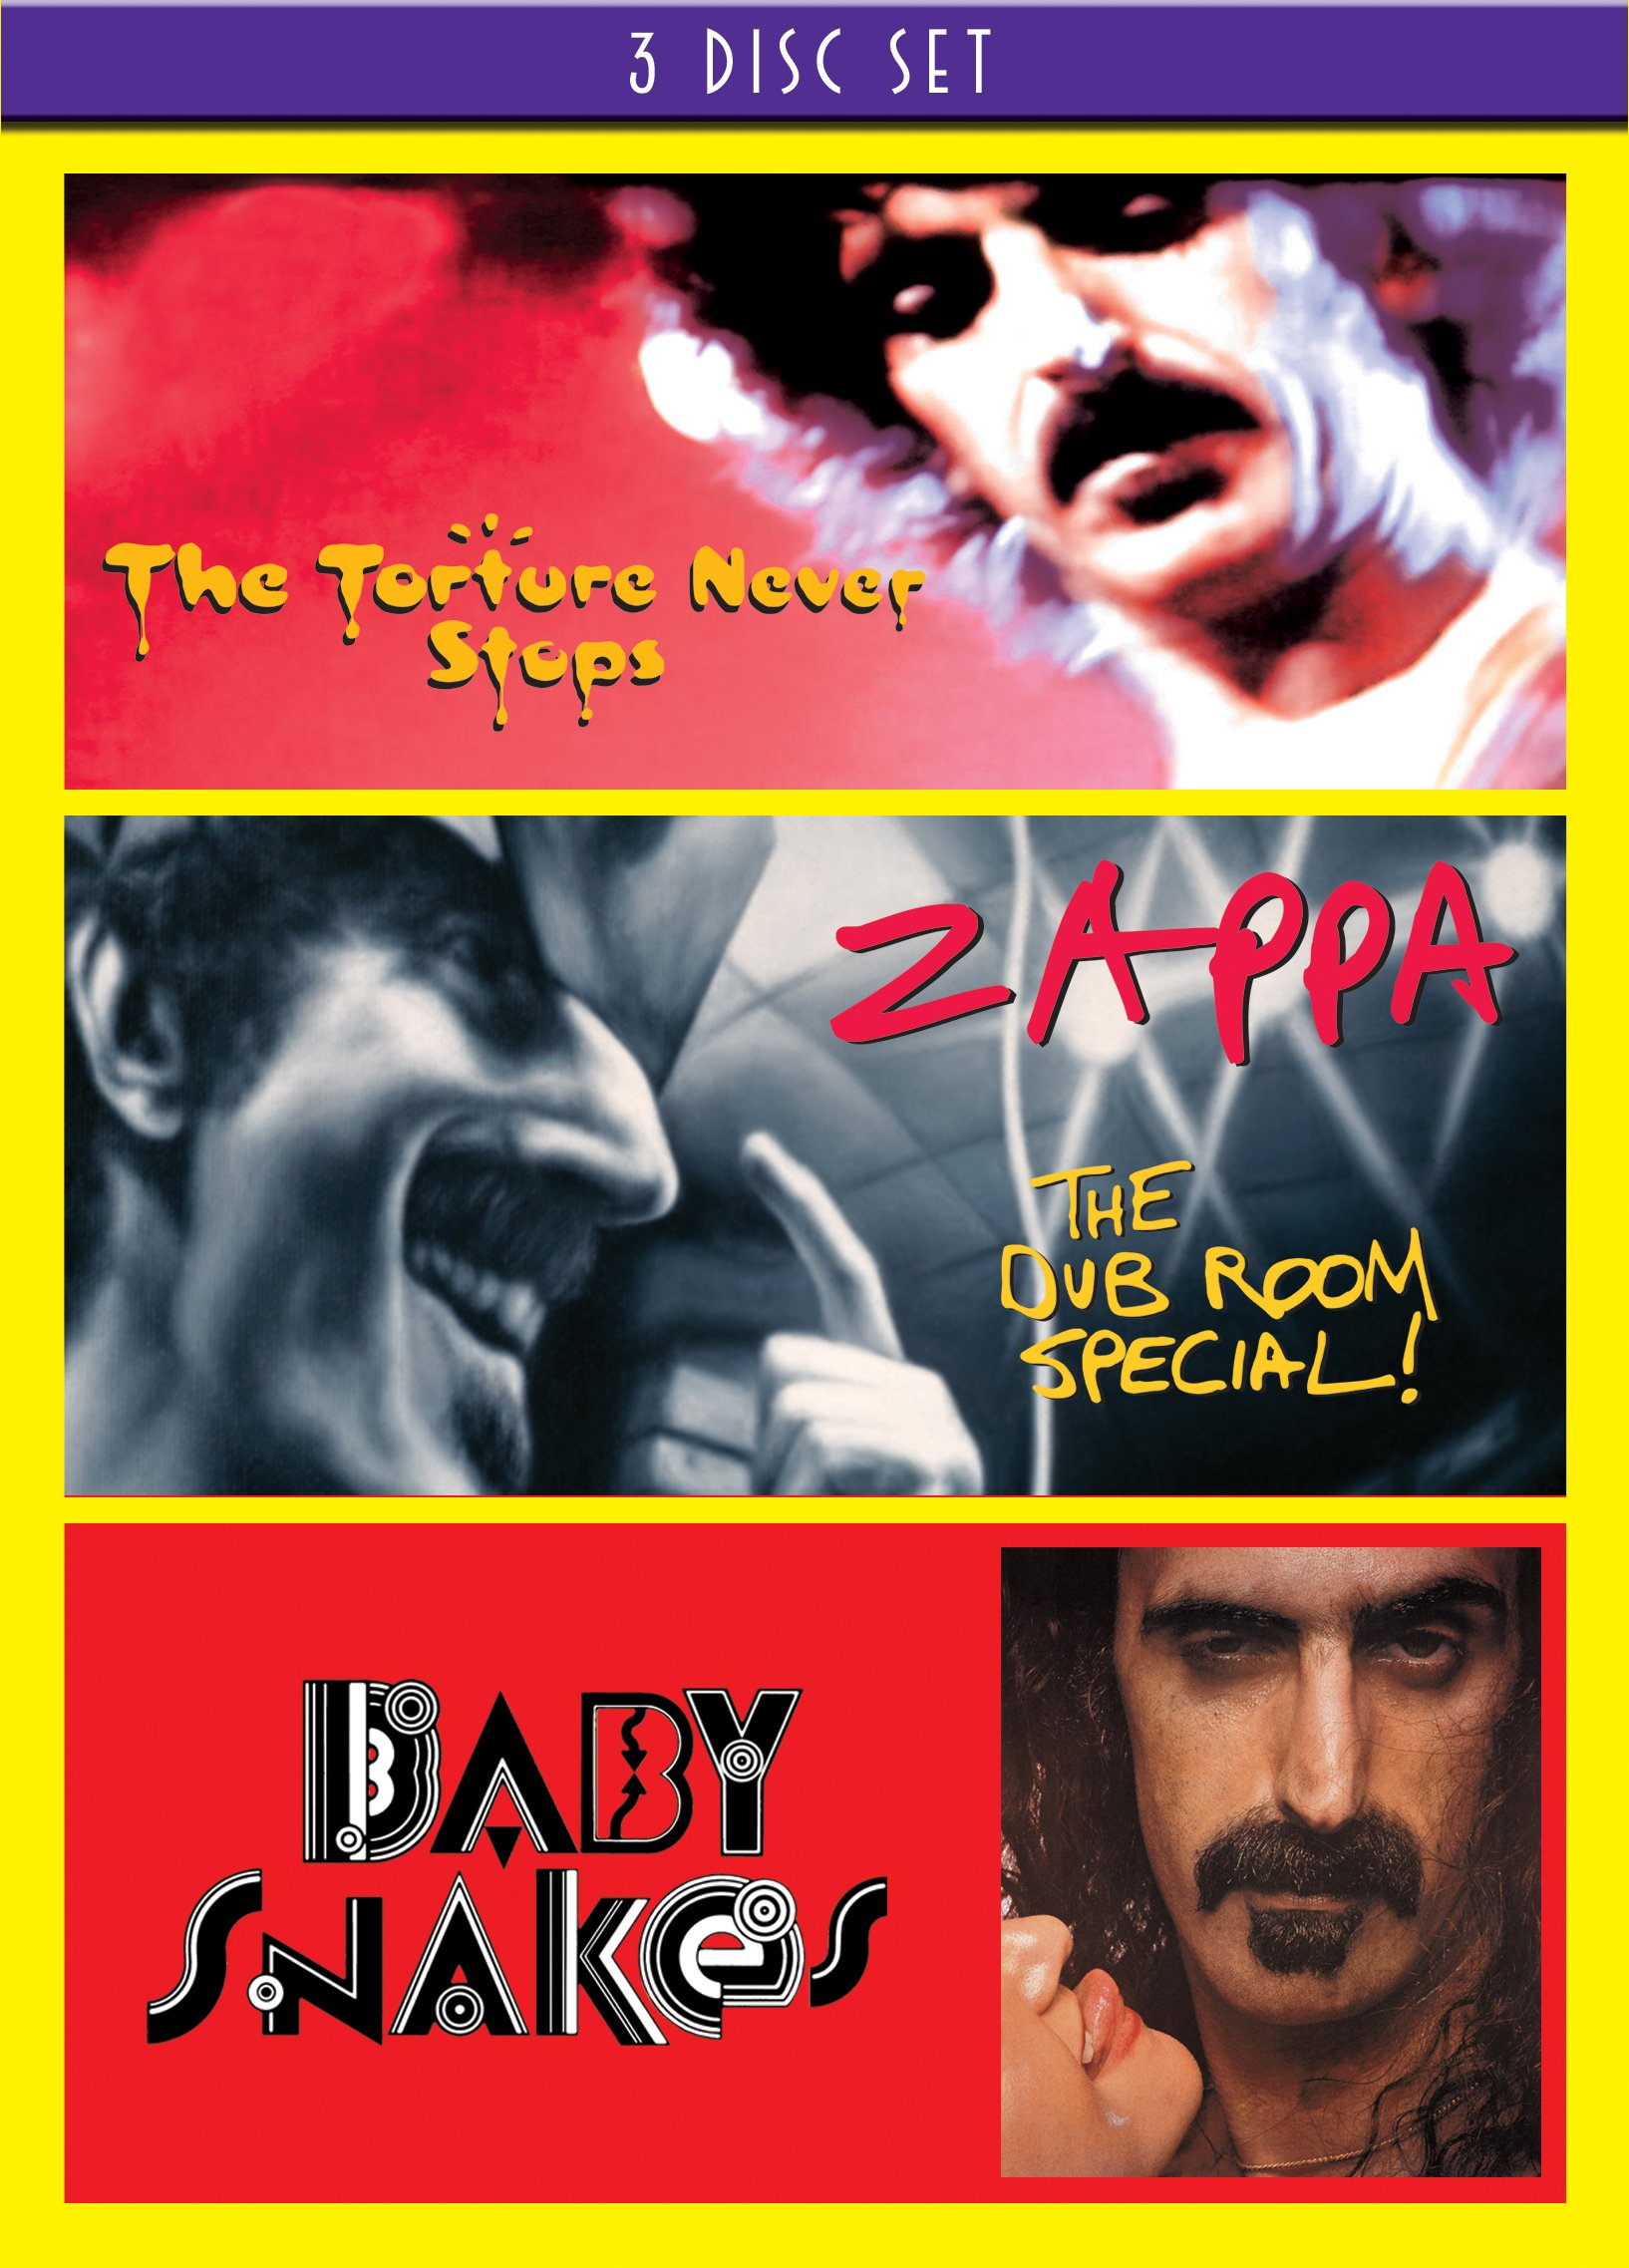 DVD : Frank Zappa - Baby Snakes / The Dub Room Special / The Torture Never Stops (3 Disc)